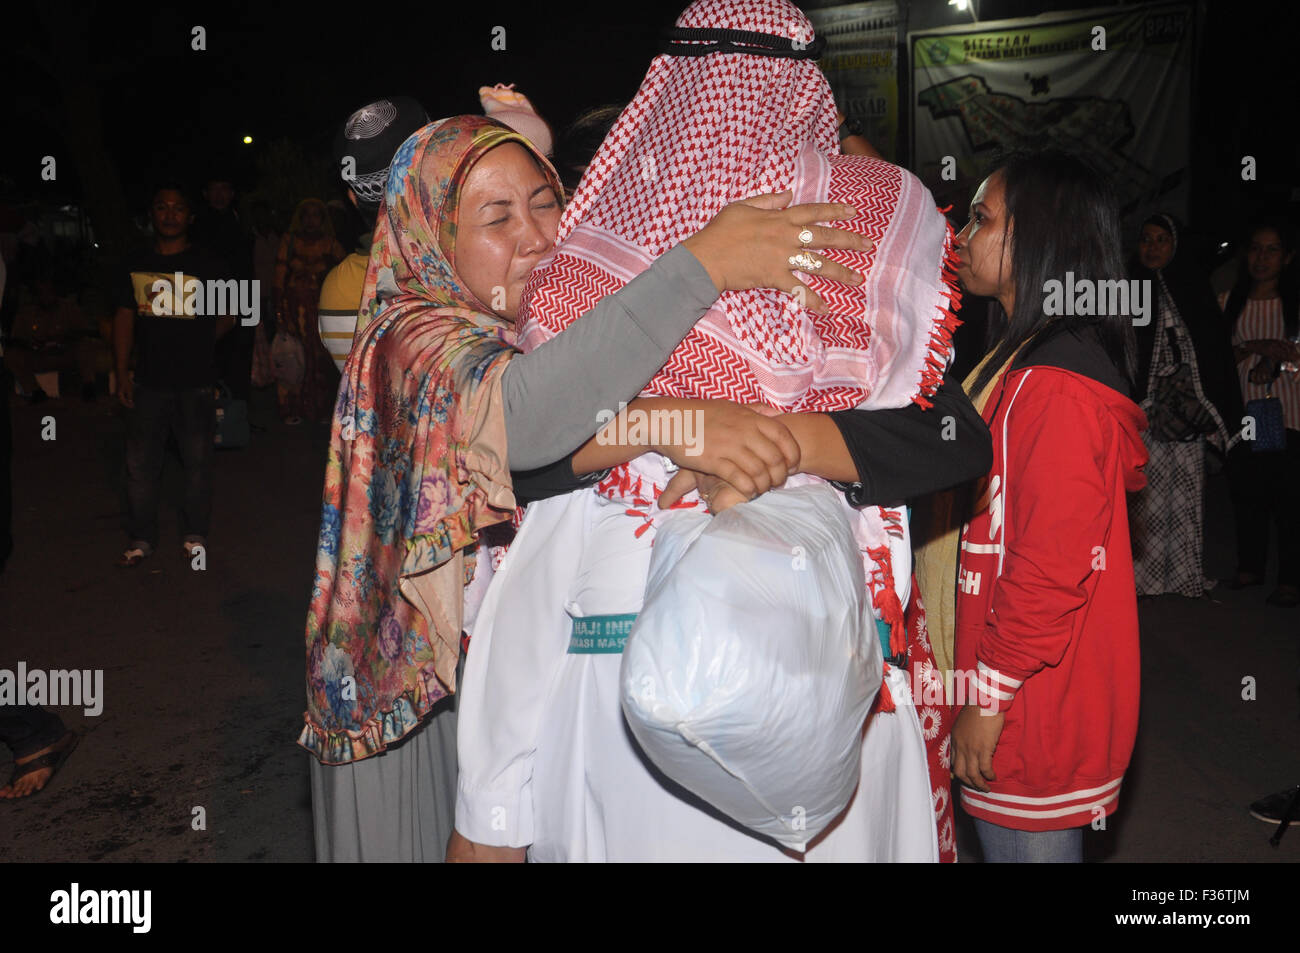 Makassar, Indonesia. 30th Sep, 2015. Indonesian hajj pilgrim gets emotional welcome from his family at Sudiang Hajj - Stock Image